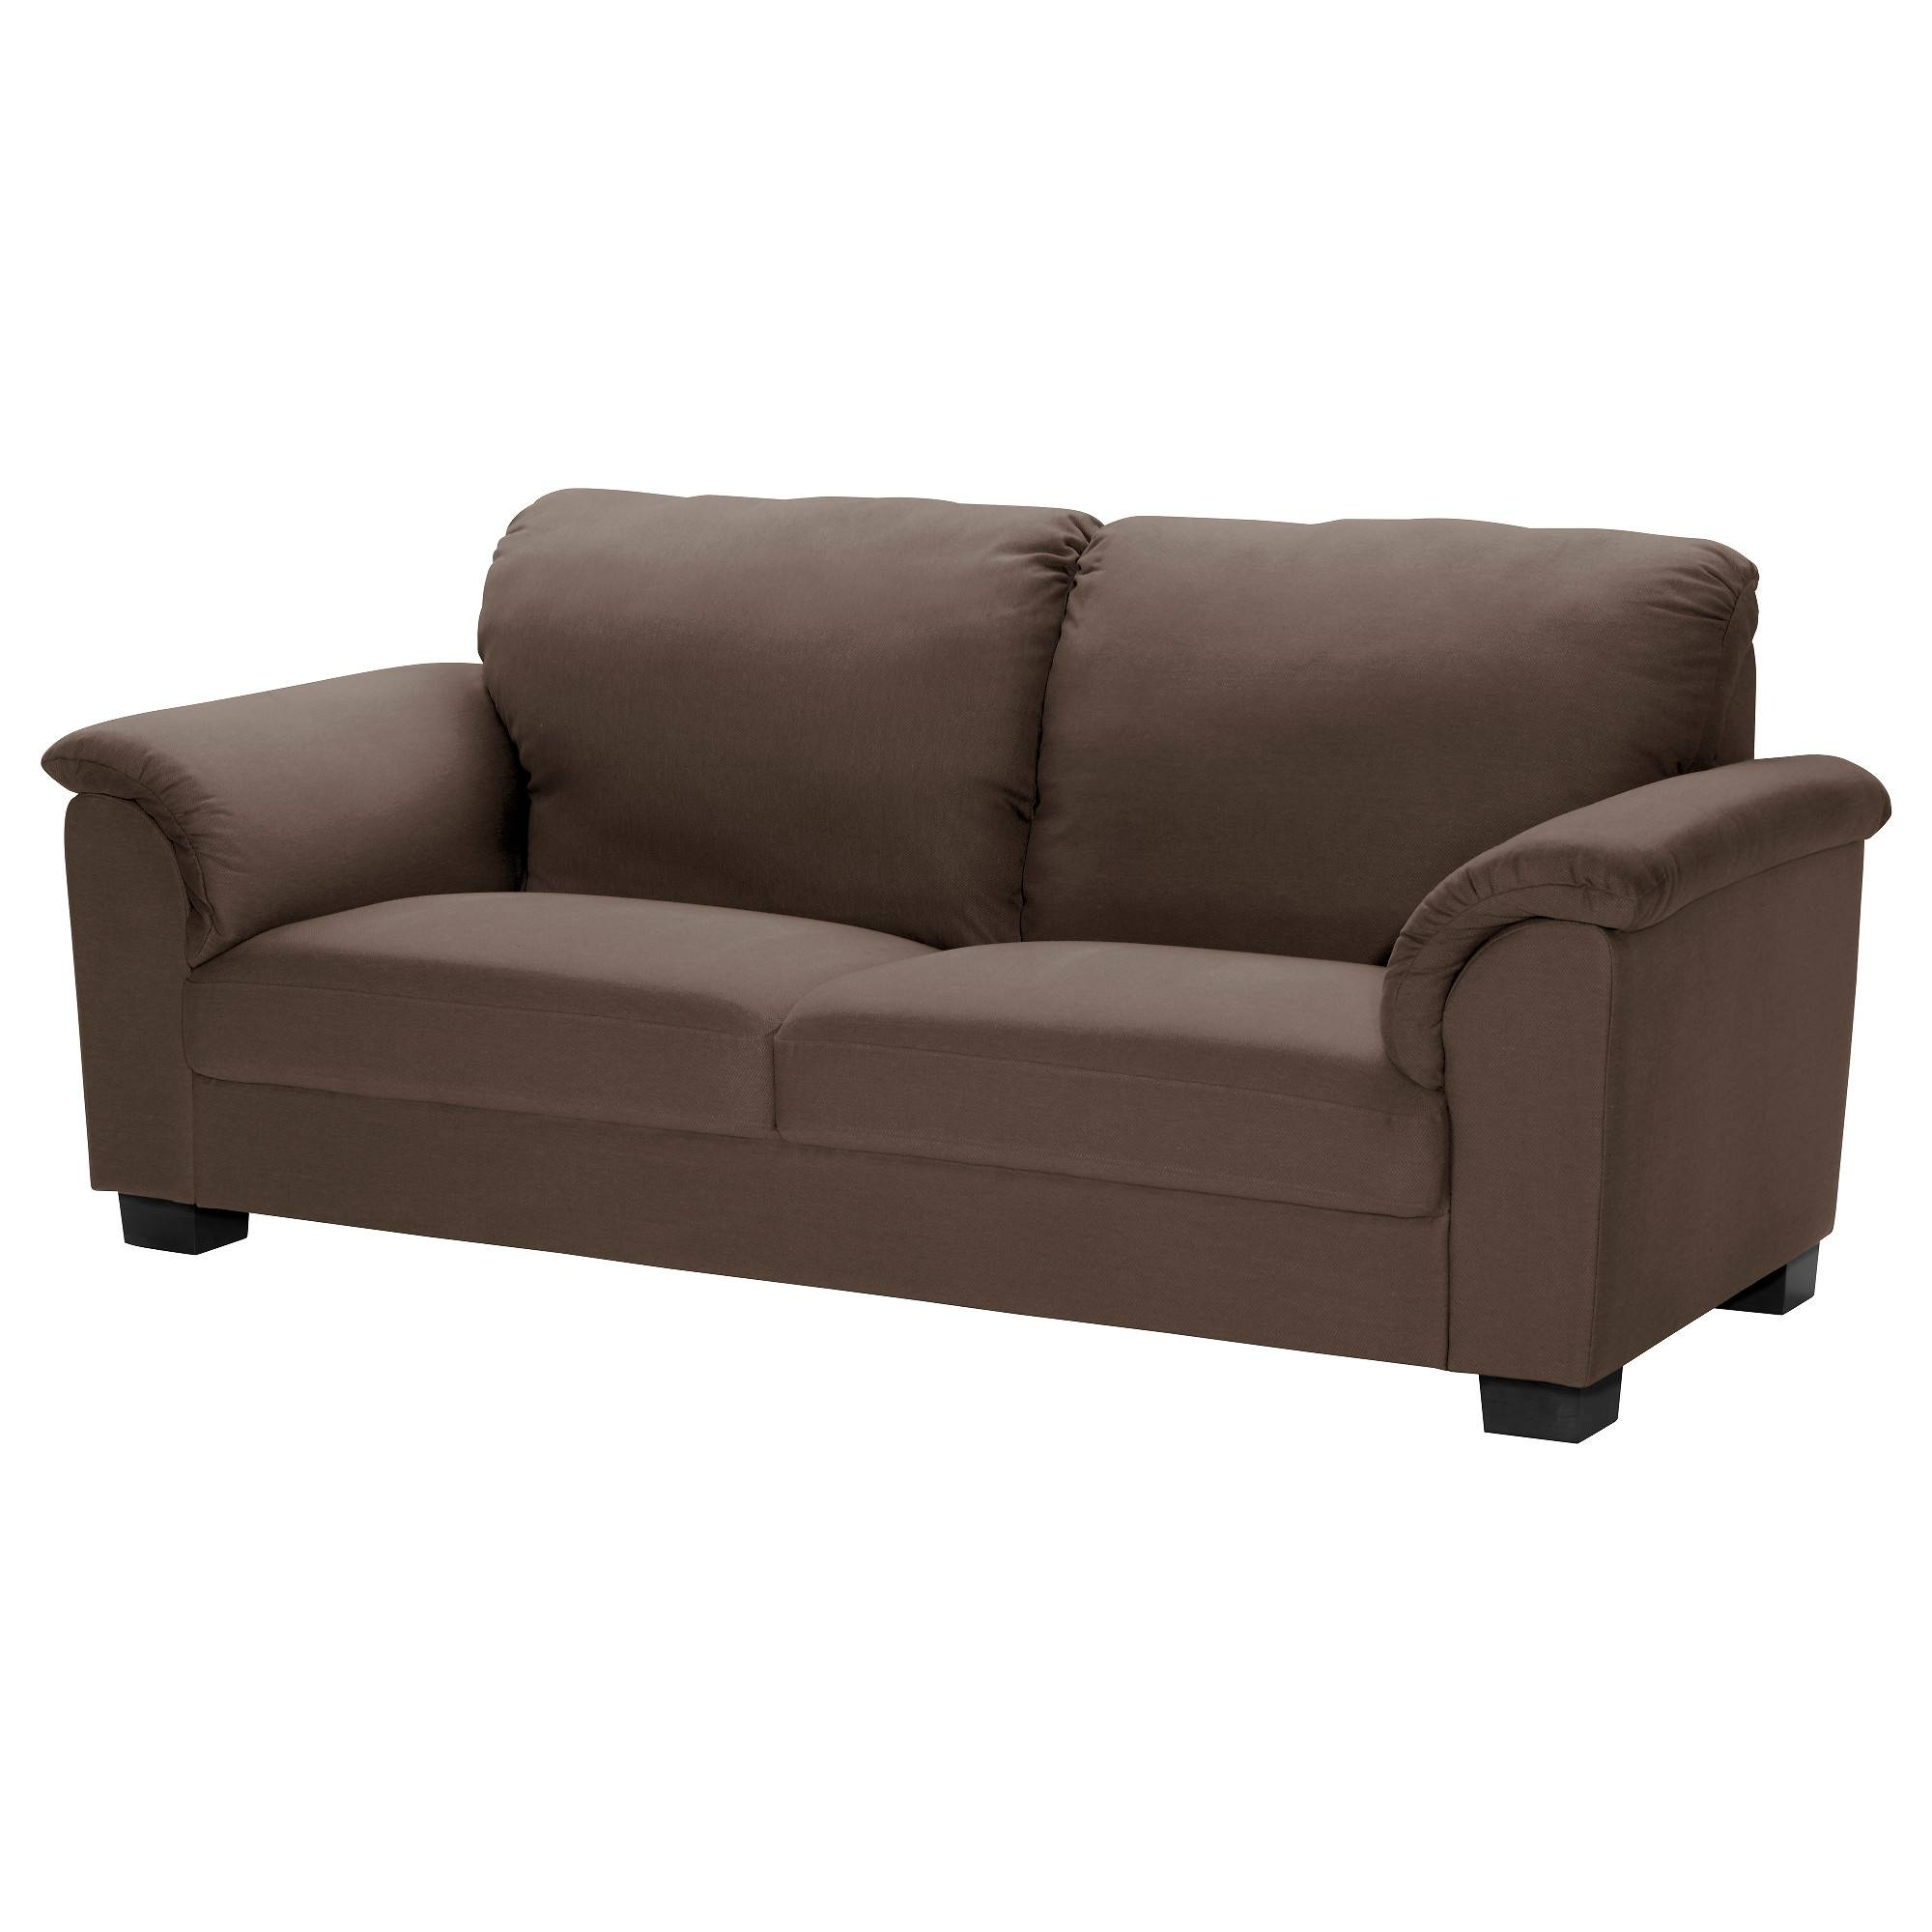 Tidafors Sofa - Hensta Gray - Ikea pertaining to Sofas (Image 14 of 15)